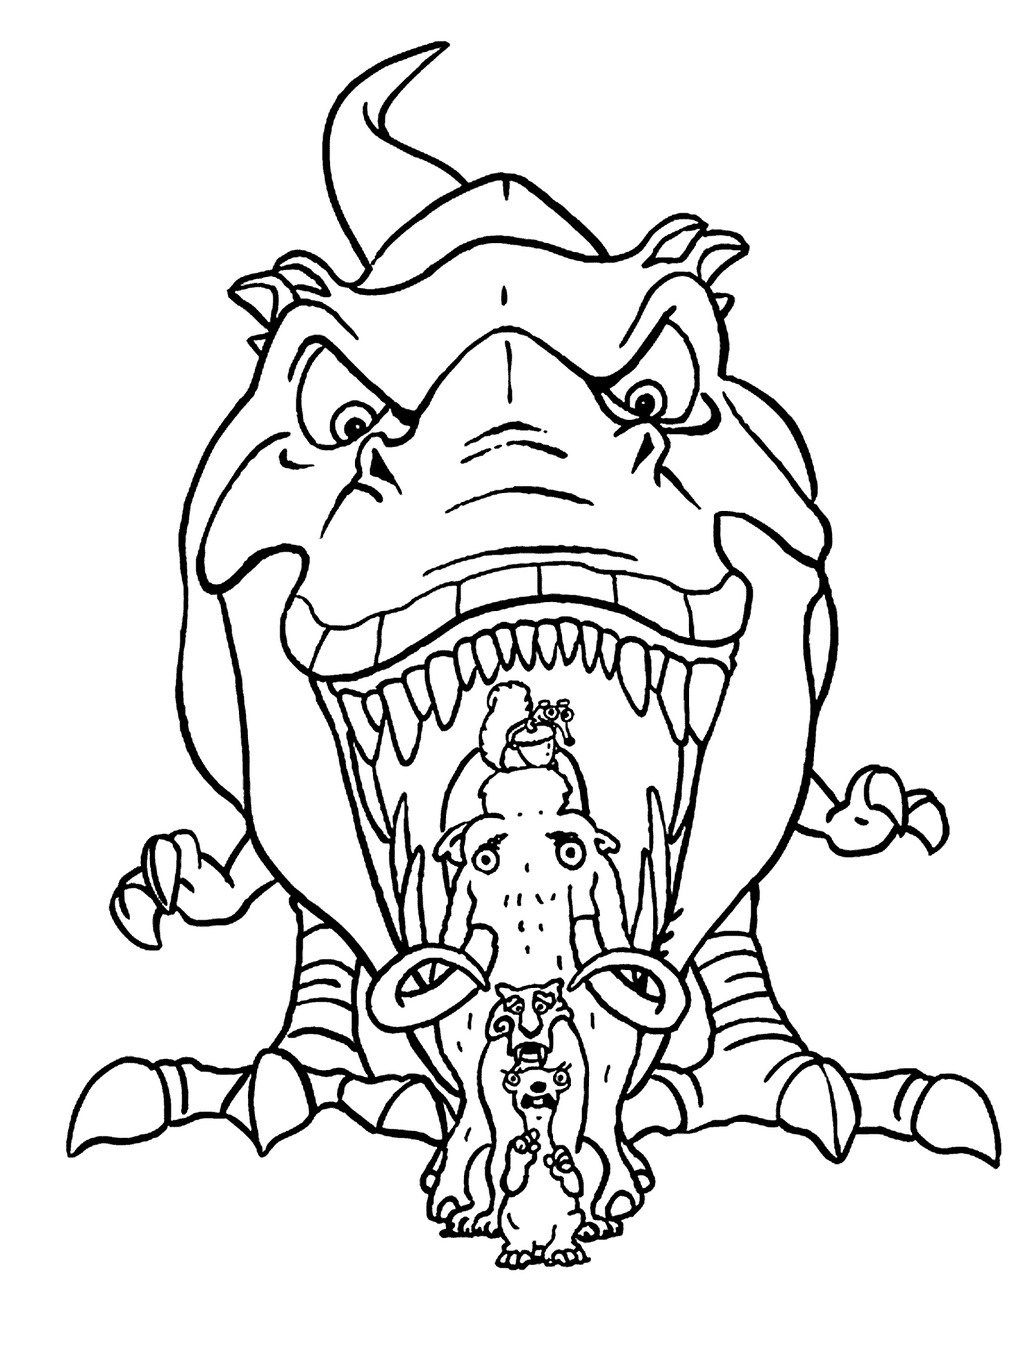 gertie dino from ice age coloring page | movie coloring and activity ...